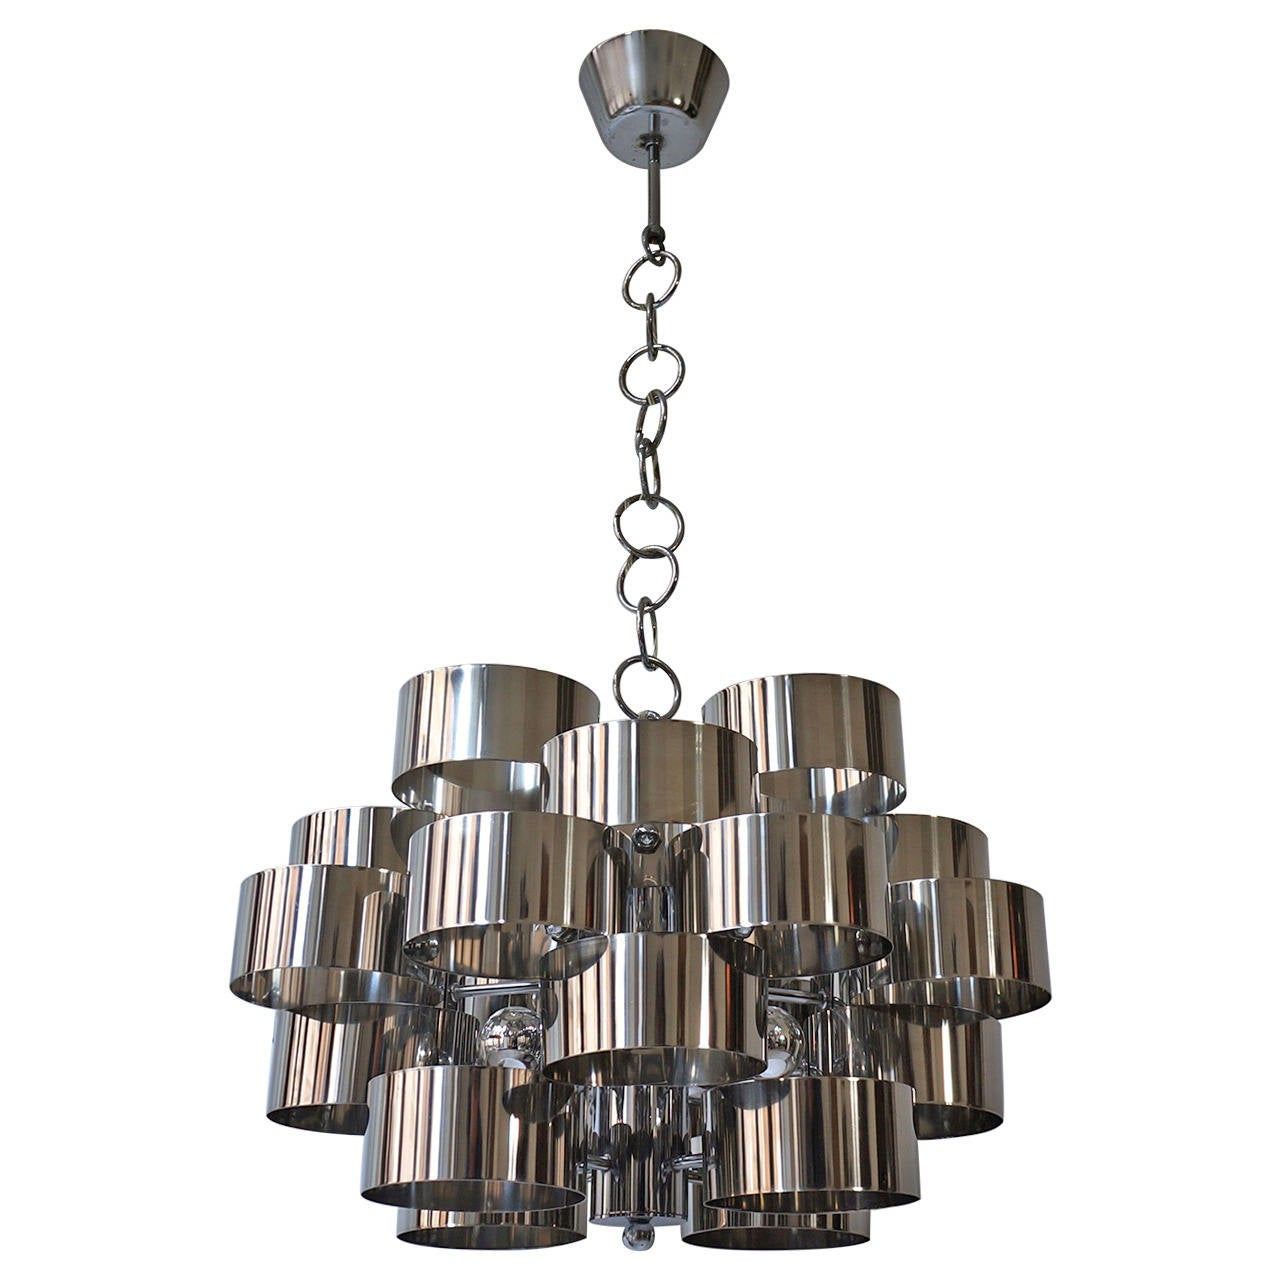 Two Italian Chrome Loop Chandeliers by Sciolari